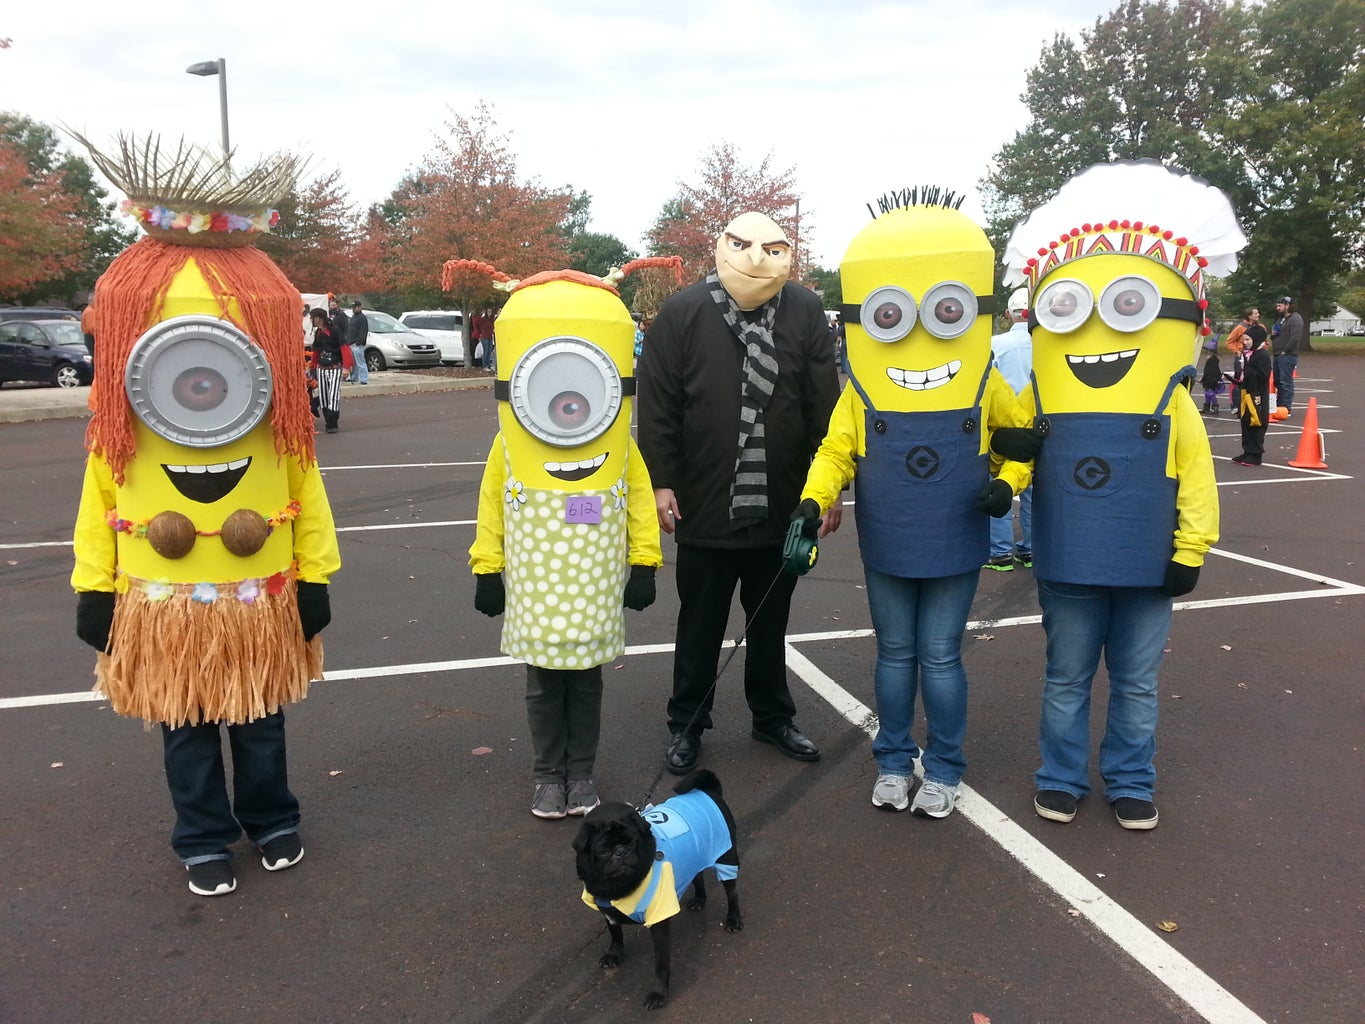 The Minions and Gru